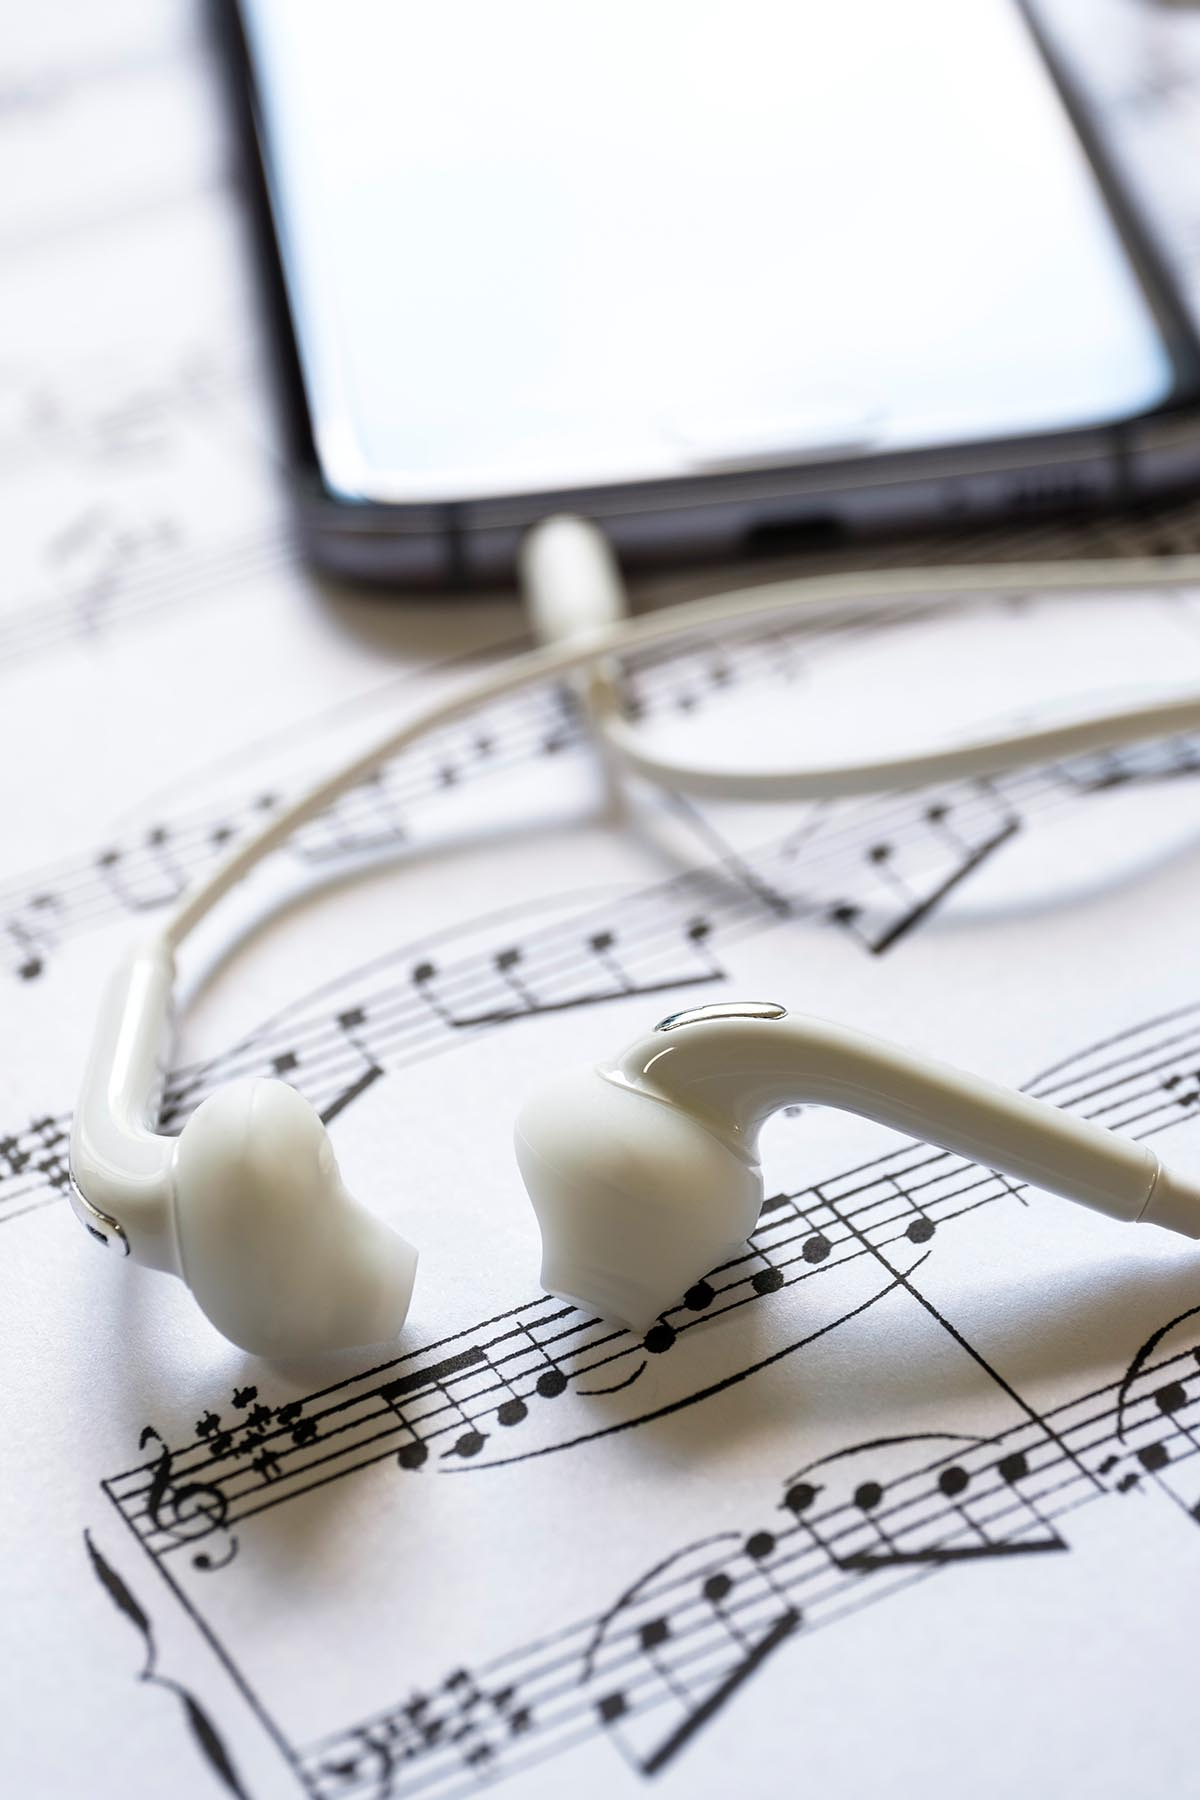 Free stock photo Earbuds and cell phone on a sheet of music